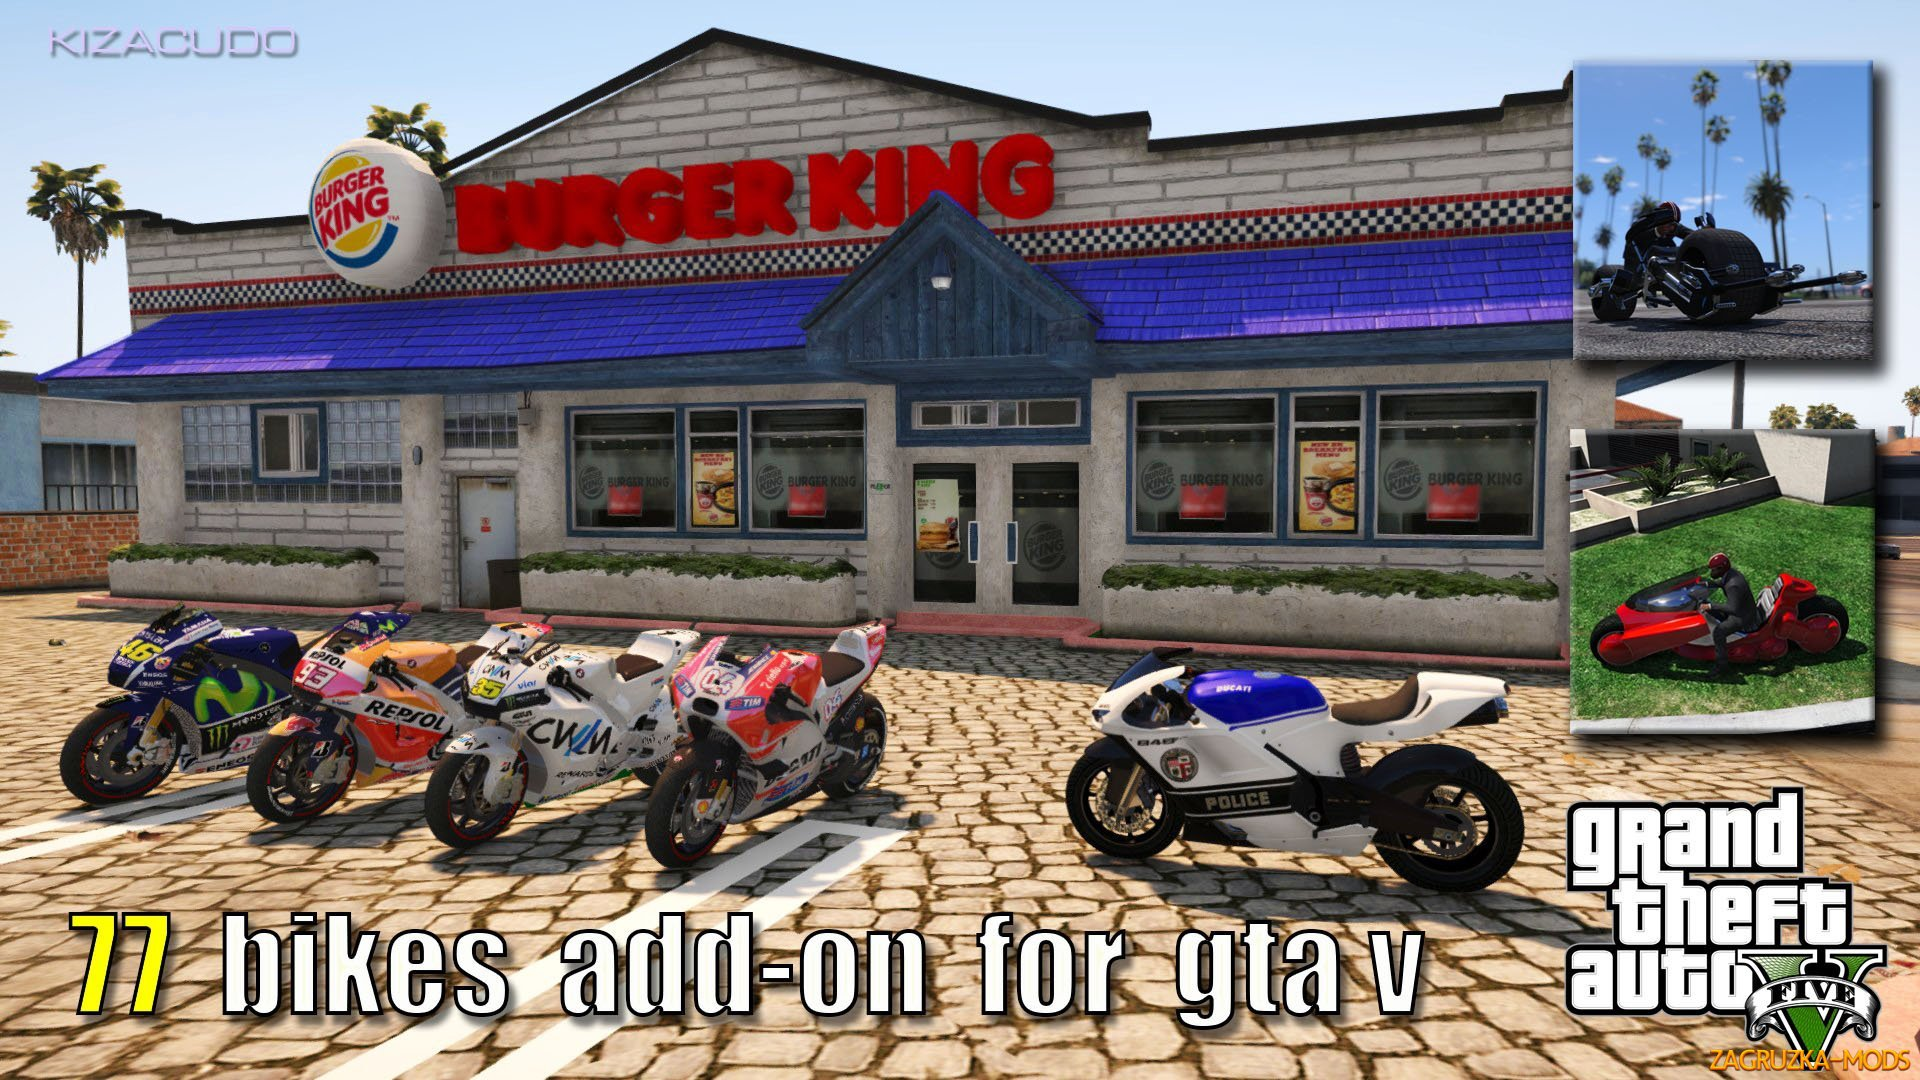 77 Bikes Add-On Compilation Pack v1.0 for GTA 5